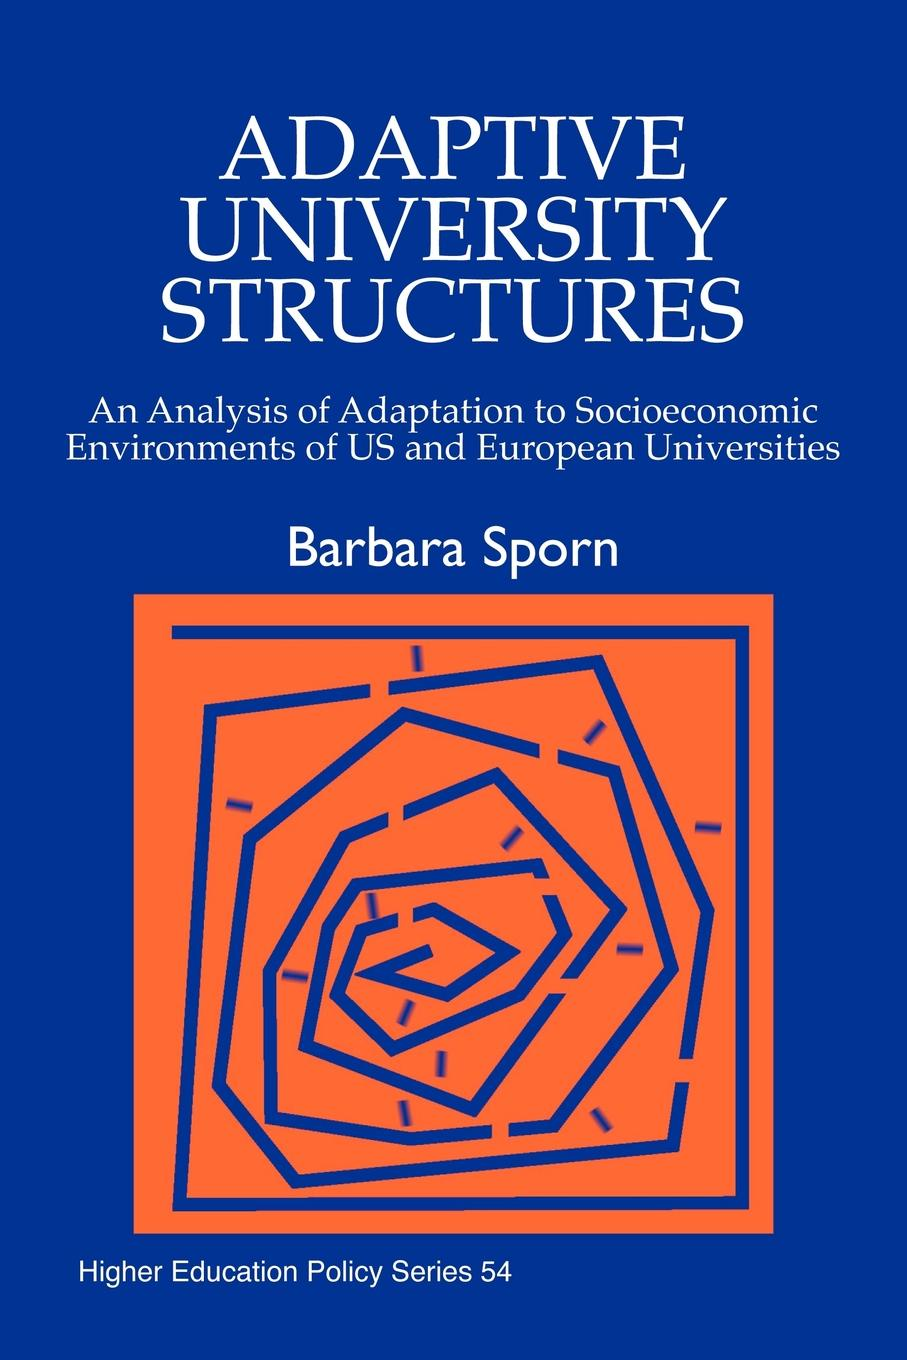 Barbara Sporn, Richard I. Miller Adaptive University Structures. An Analysis of Adaptation to Socioeconomic Environments of Us and European Universities t datta k seismic analysis of structures